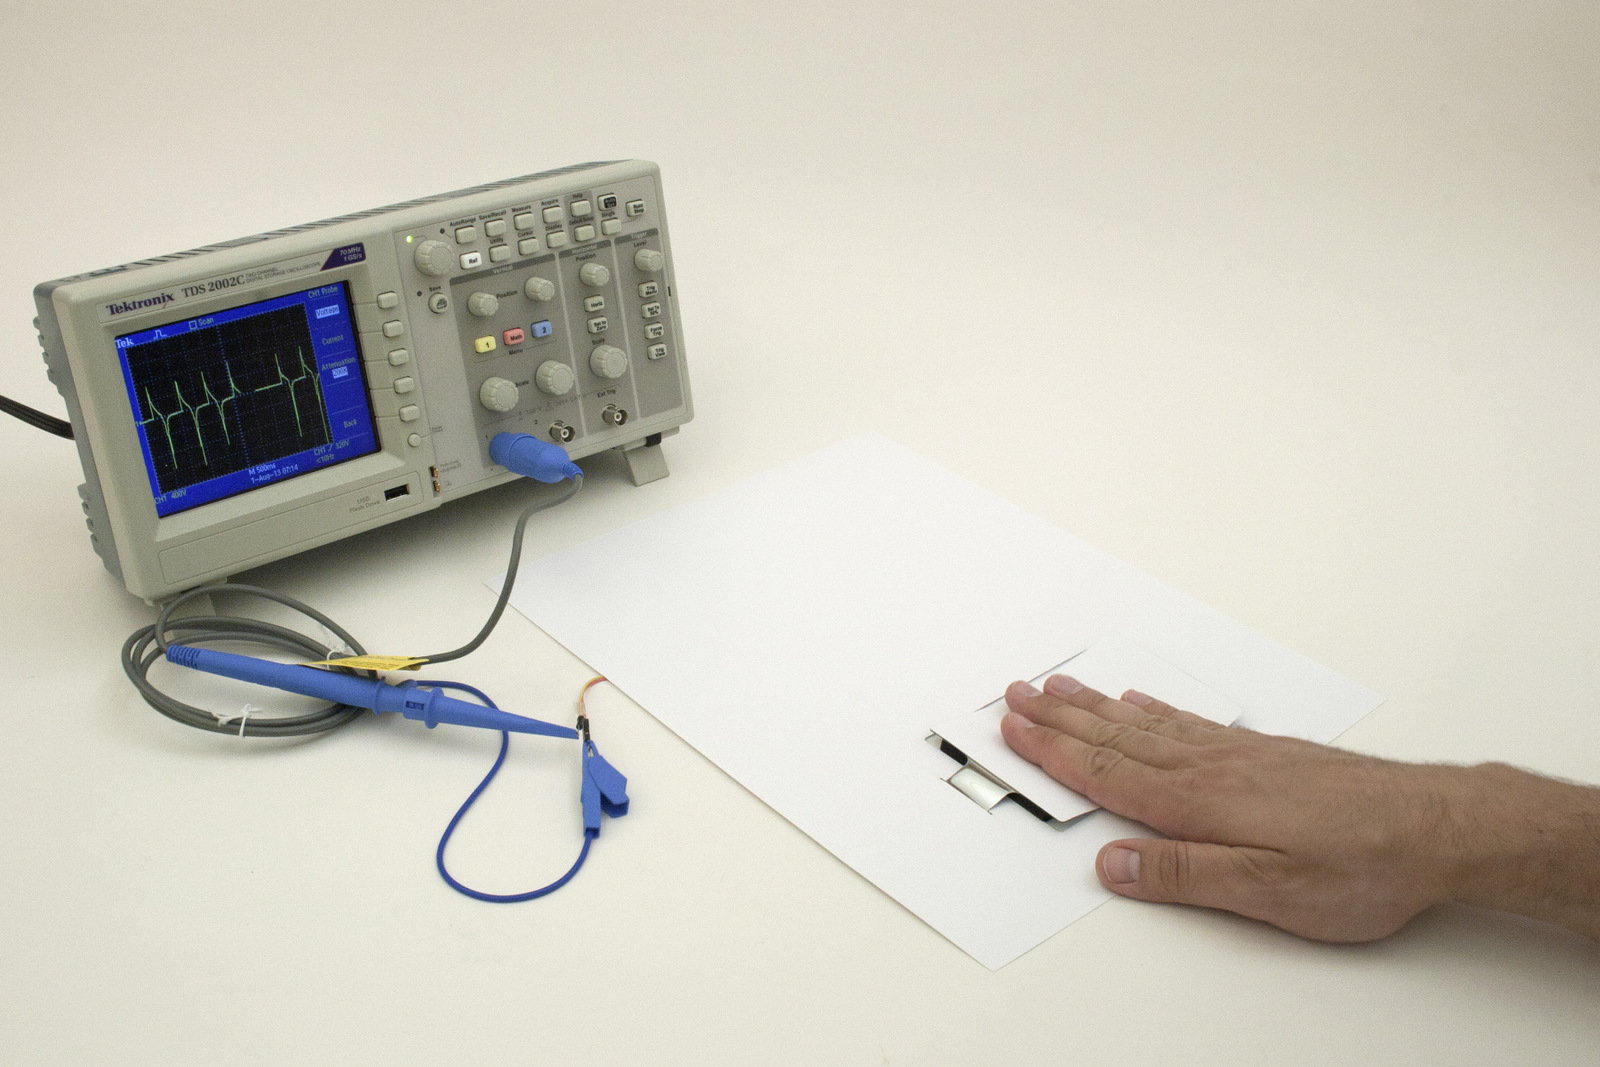 Disney Research Paper Generators Harvesting Energy From Button Connected To  An Oscilloscope